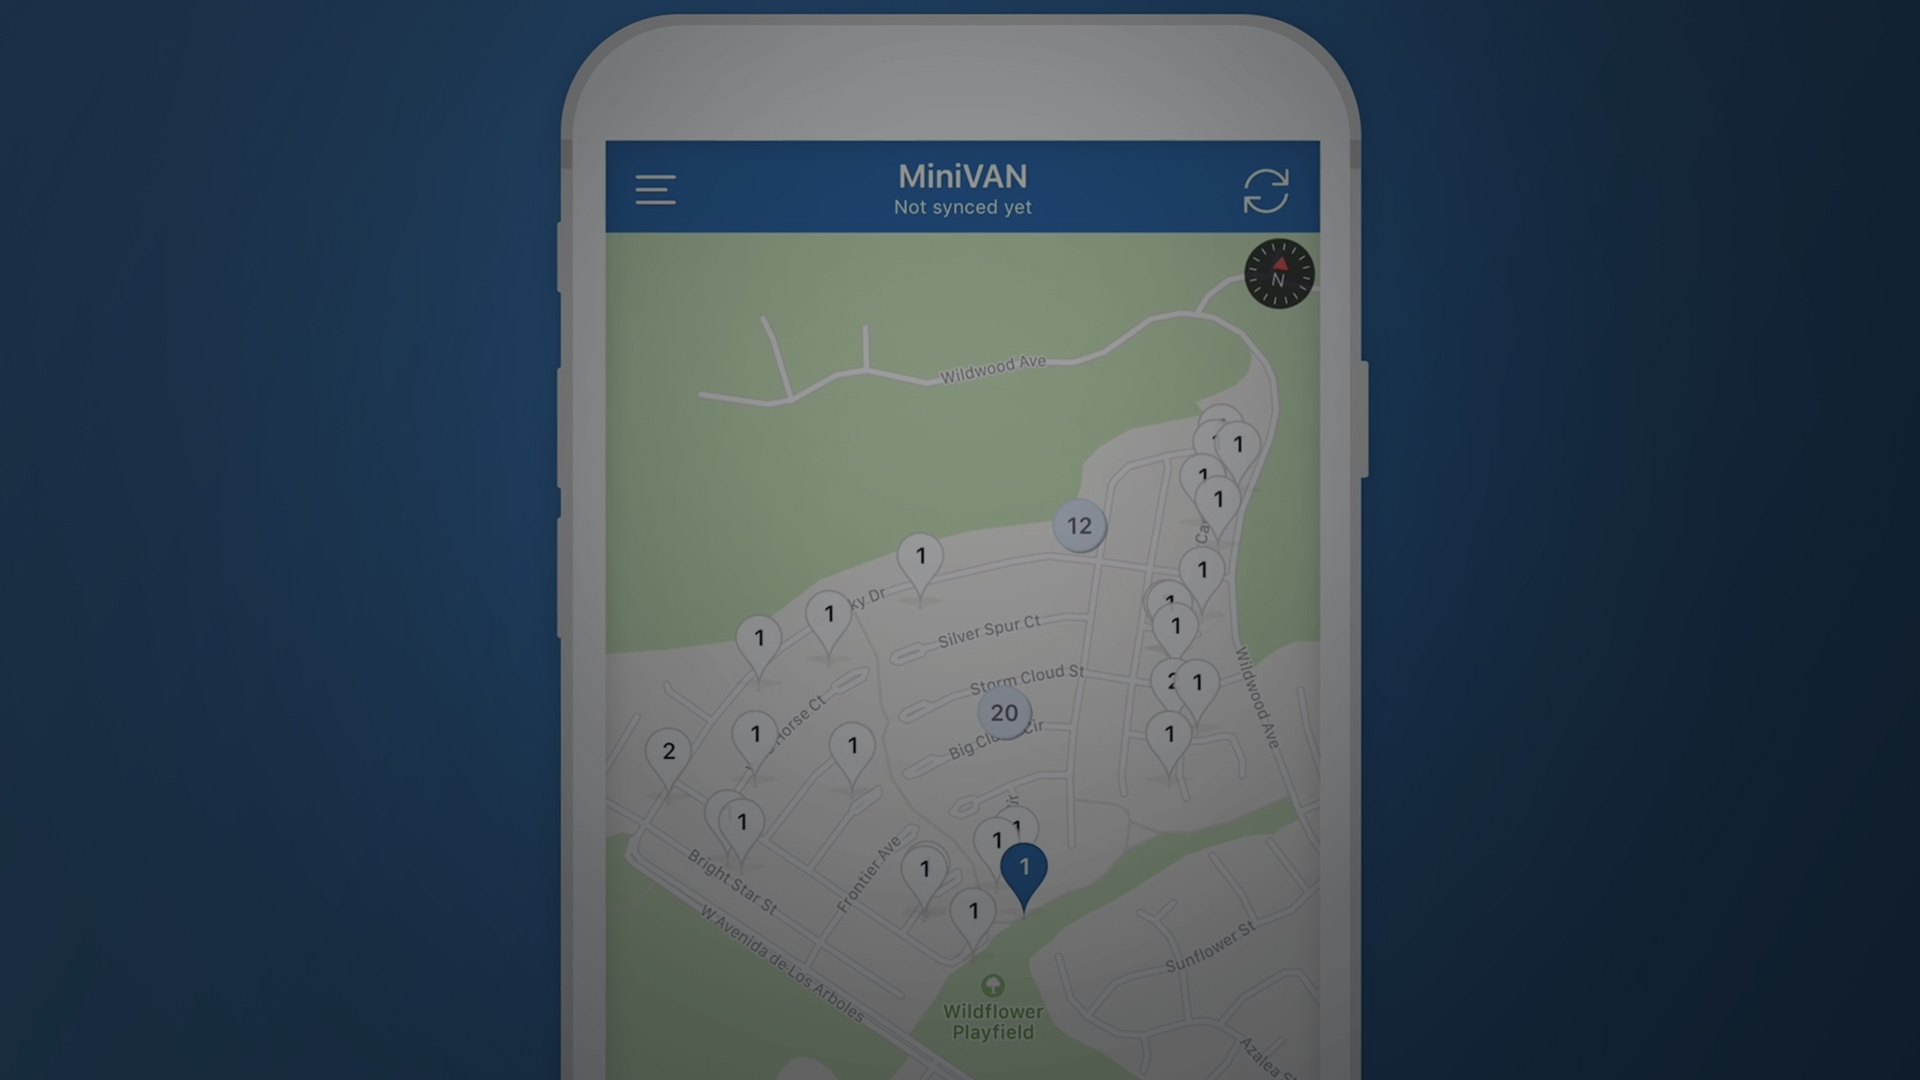 How to use MiniVan Touch - When you're out knocking doors, some campaigns will ask you to use mobile apps instead of paper lists. Get ready for your upcoming canvass and learn the ins & outs of MiniVan Touch!